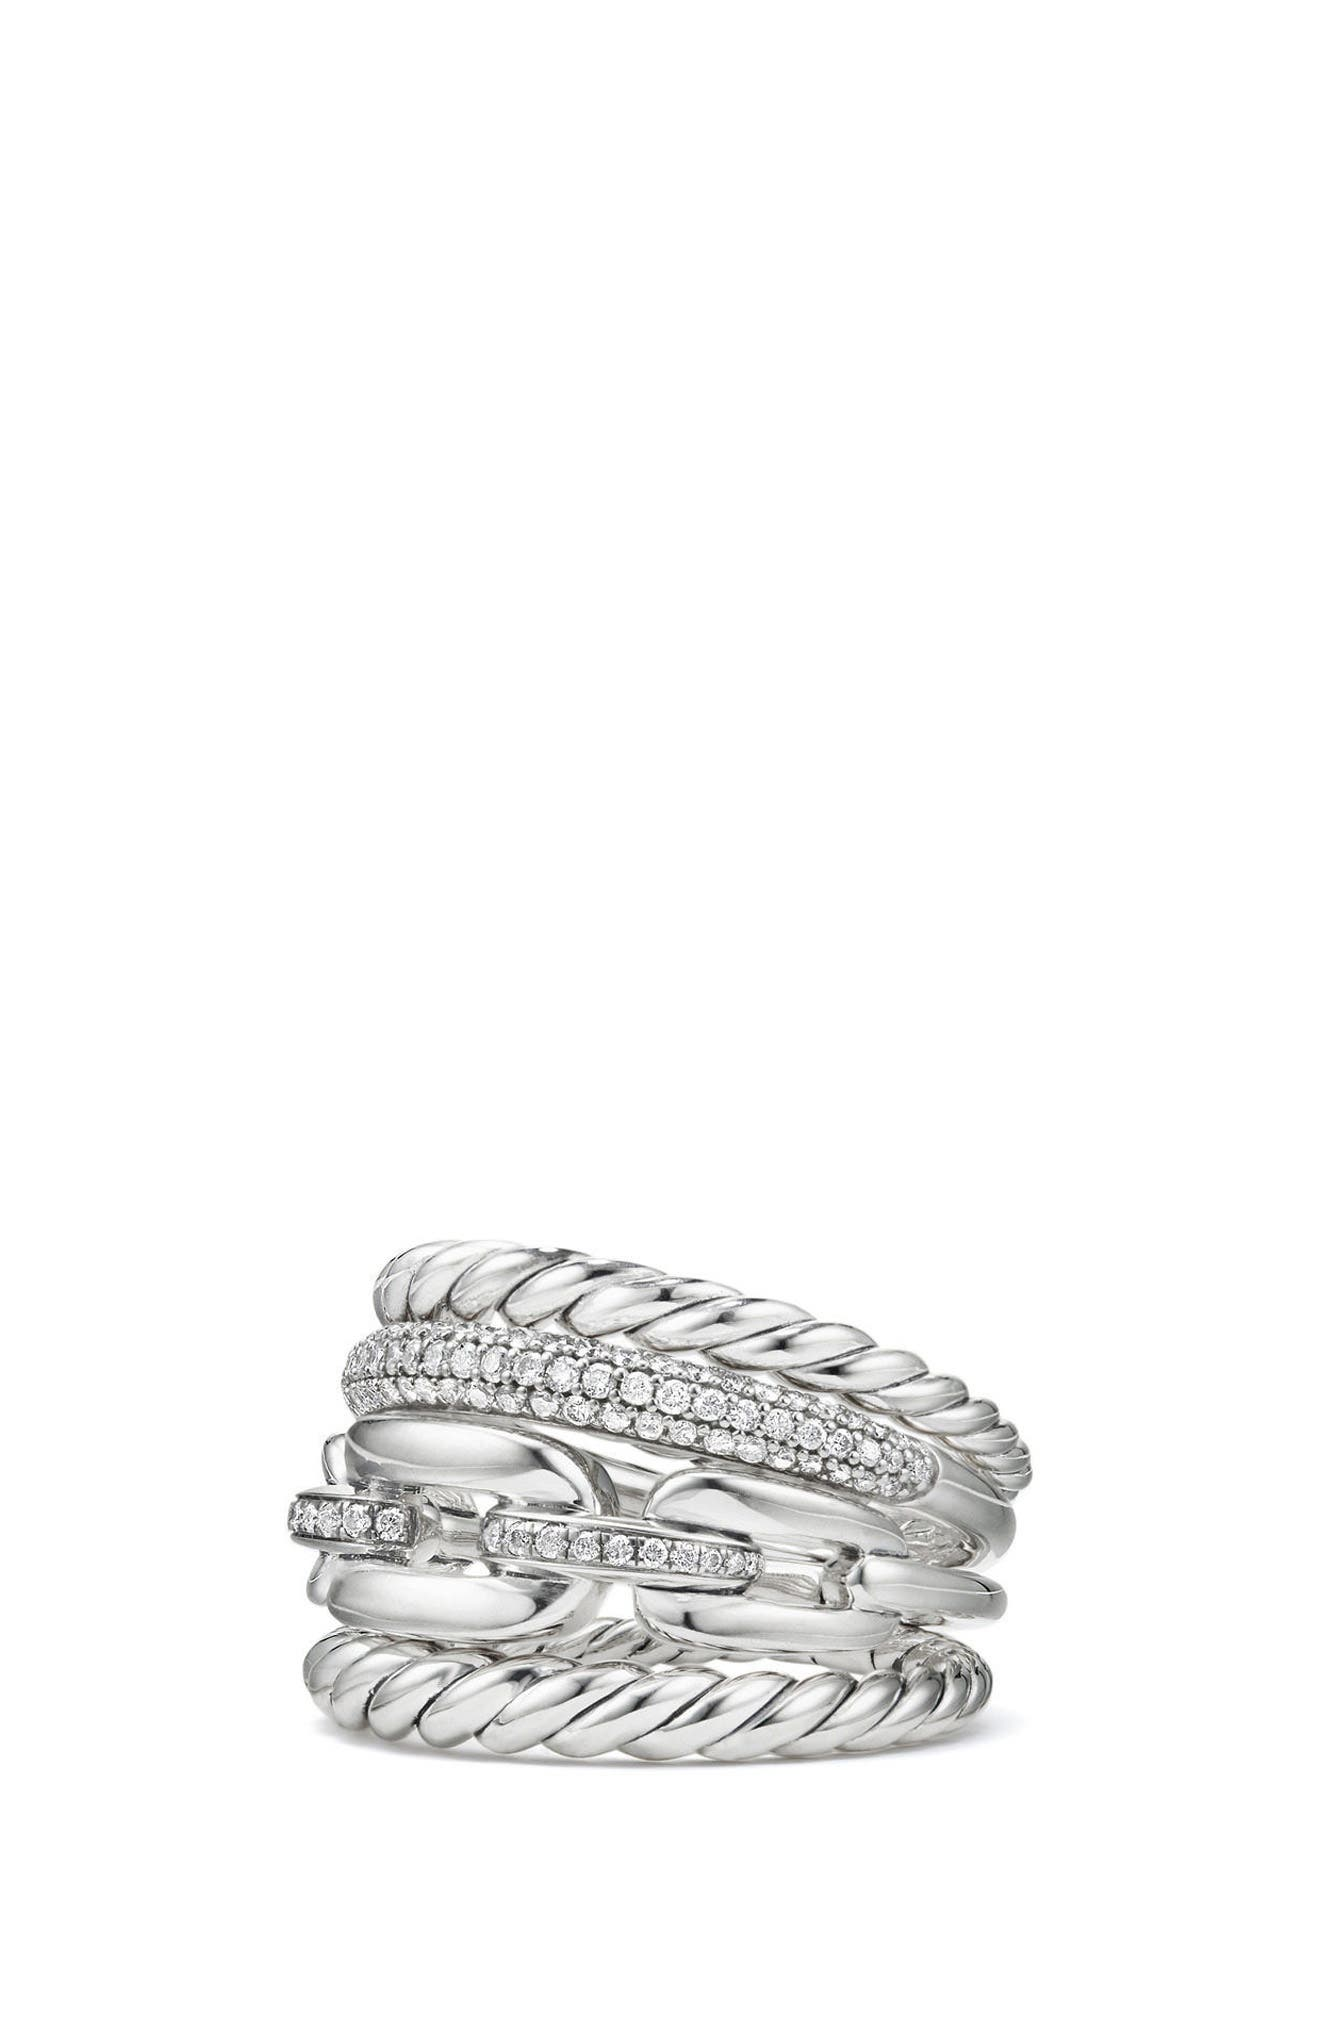 Wellesley Four-Row Ring with Diamonds,                             Main thumbnail 1, color,                             Silver